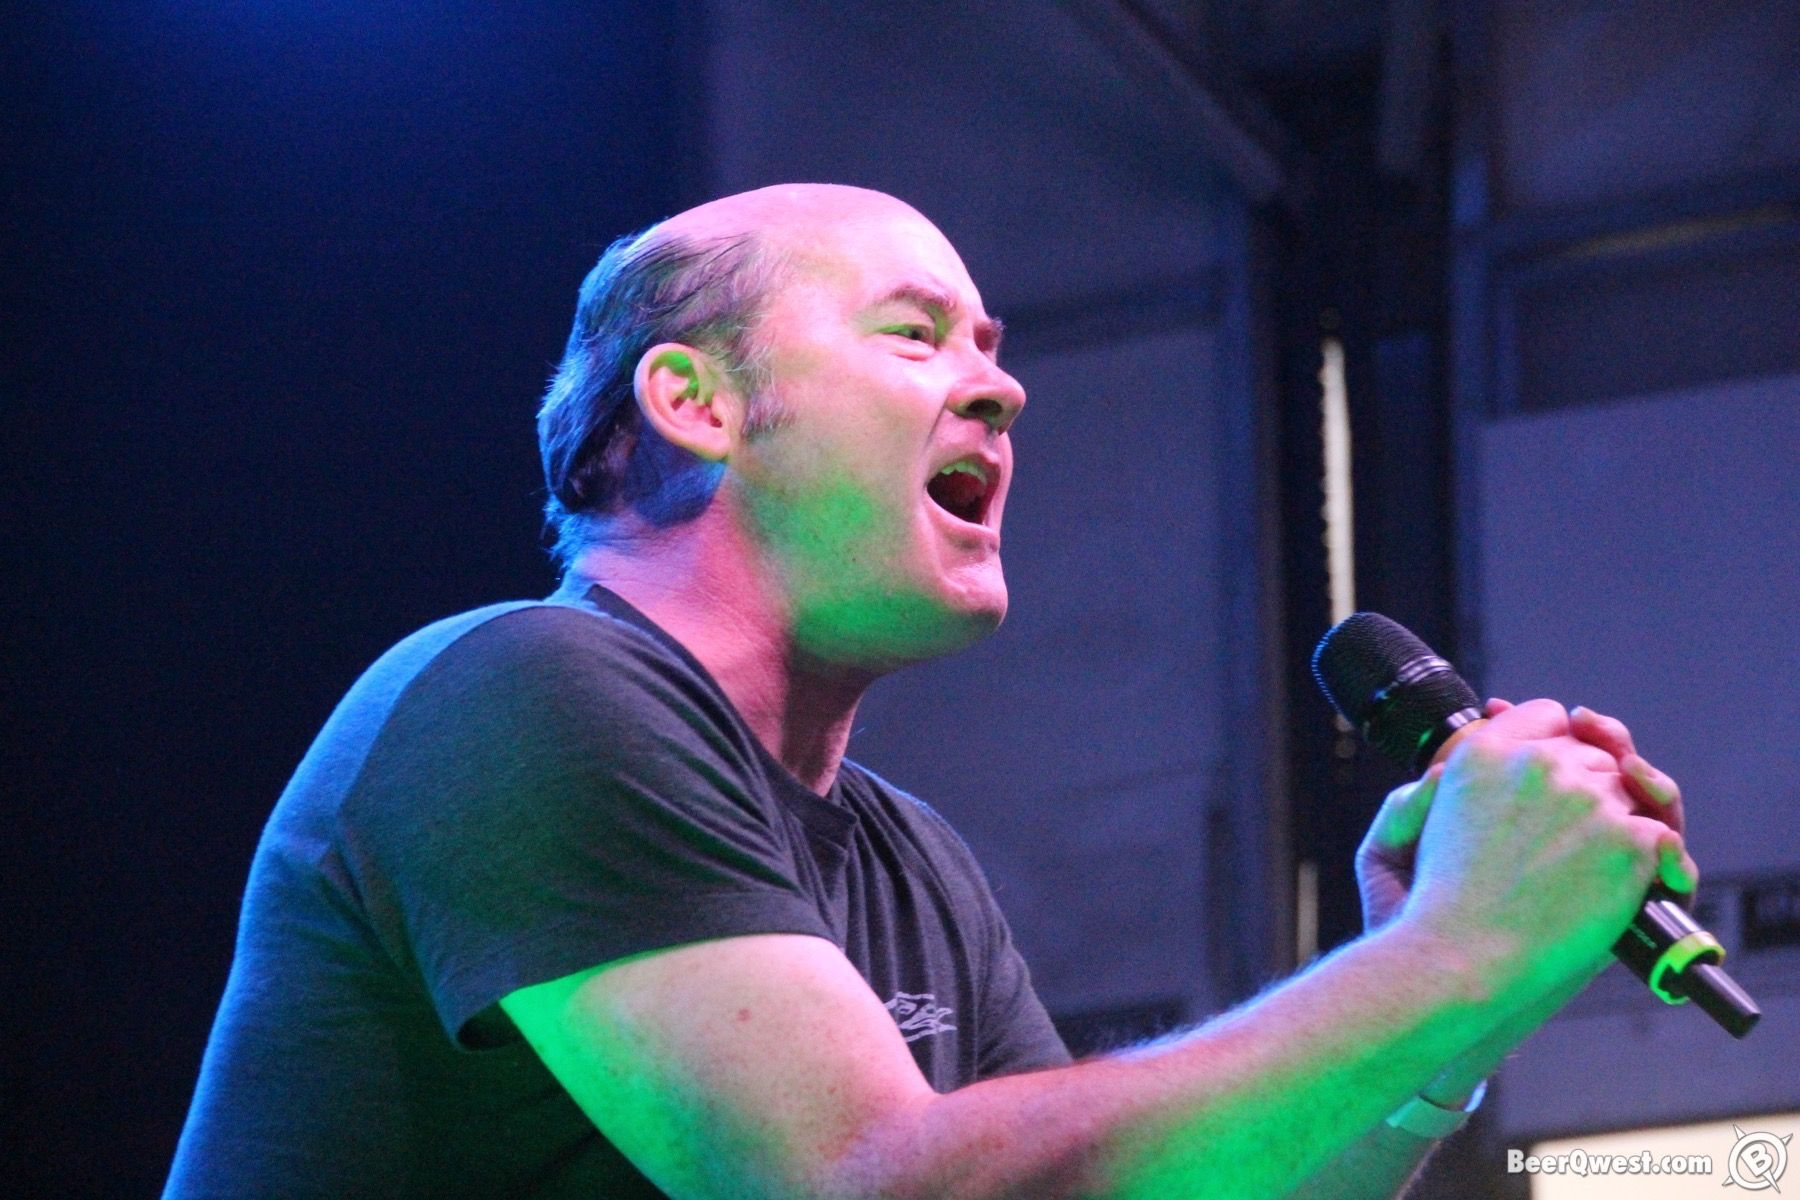 David Koechner on stage at Cali Uncorked